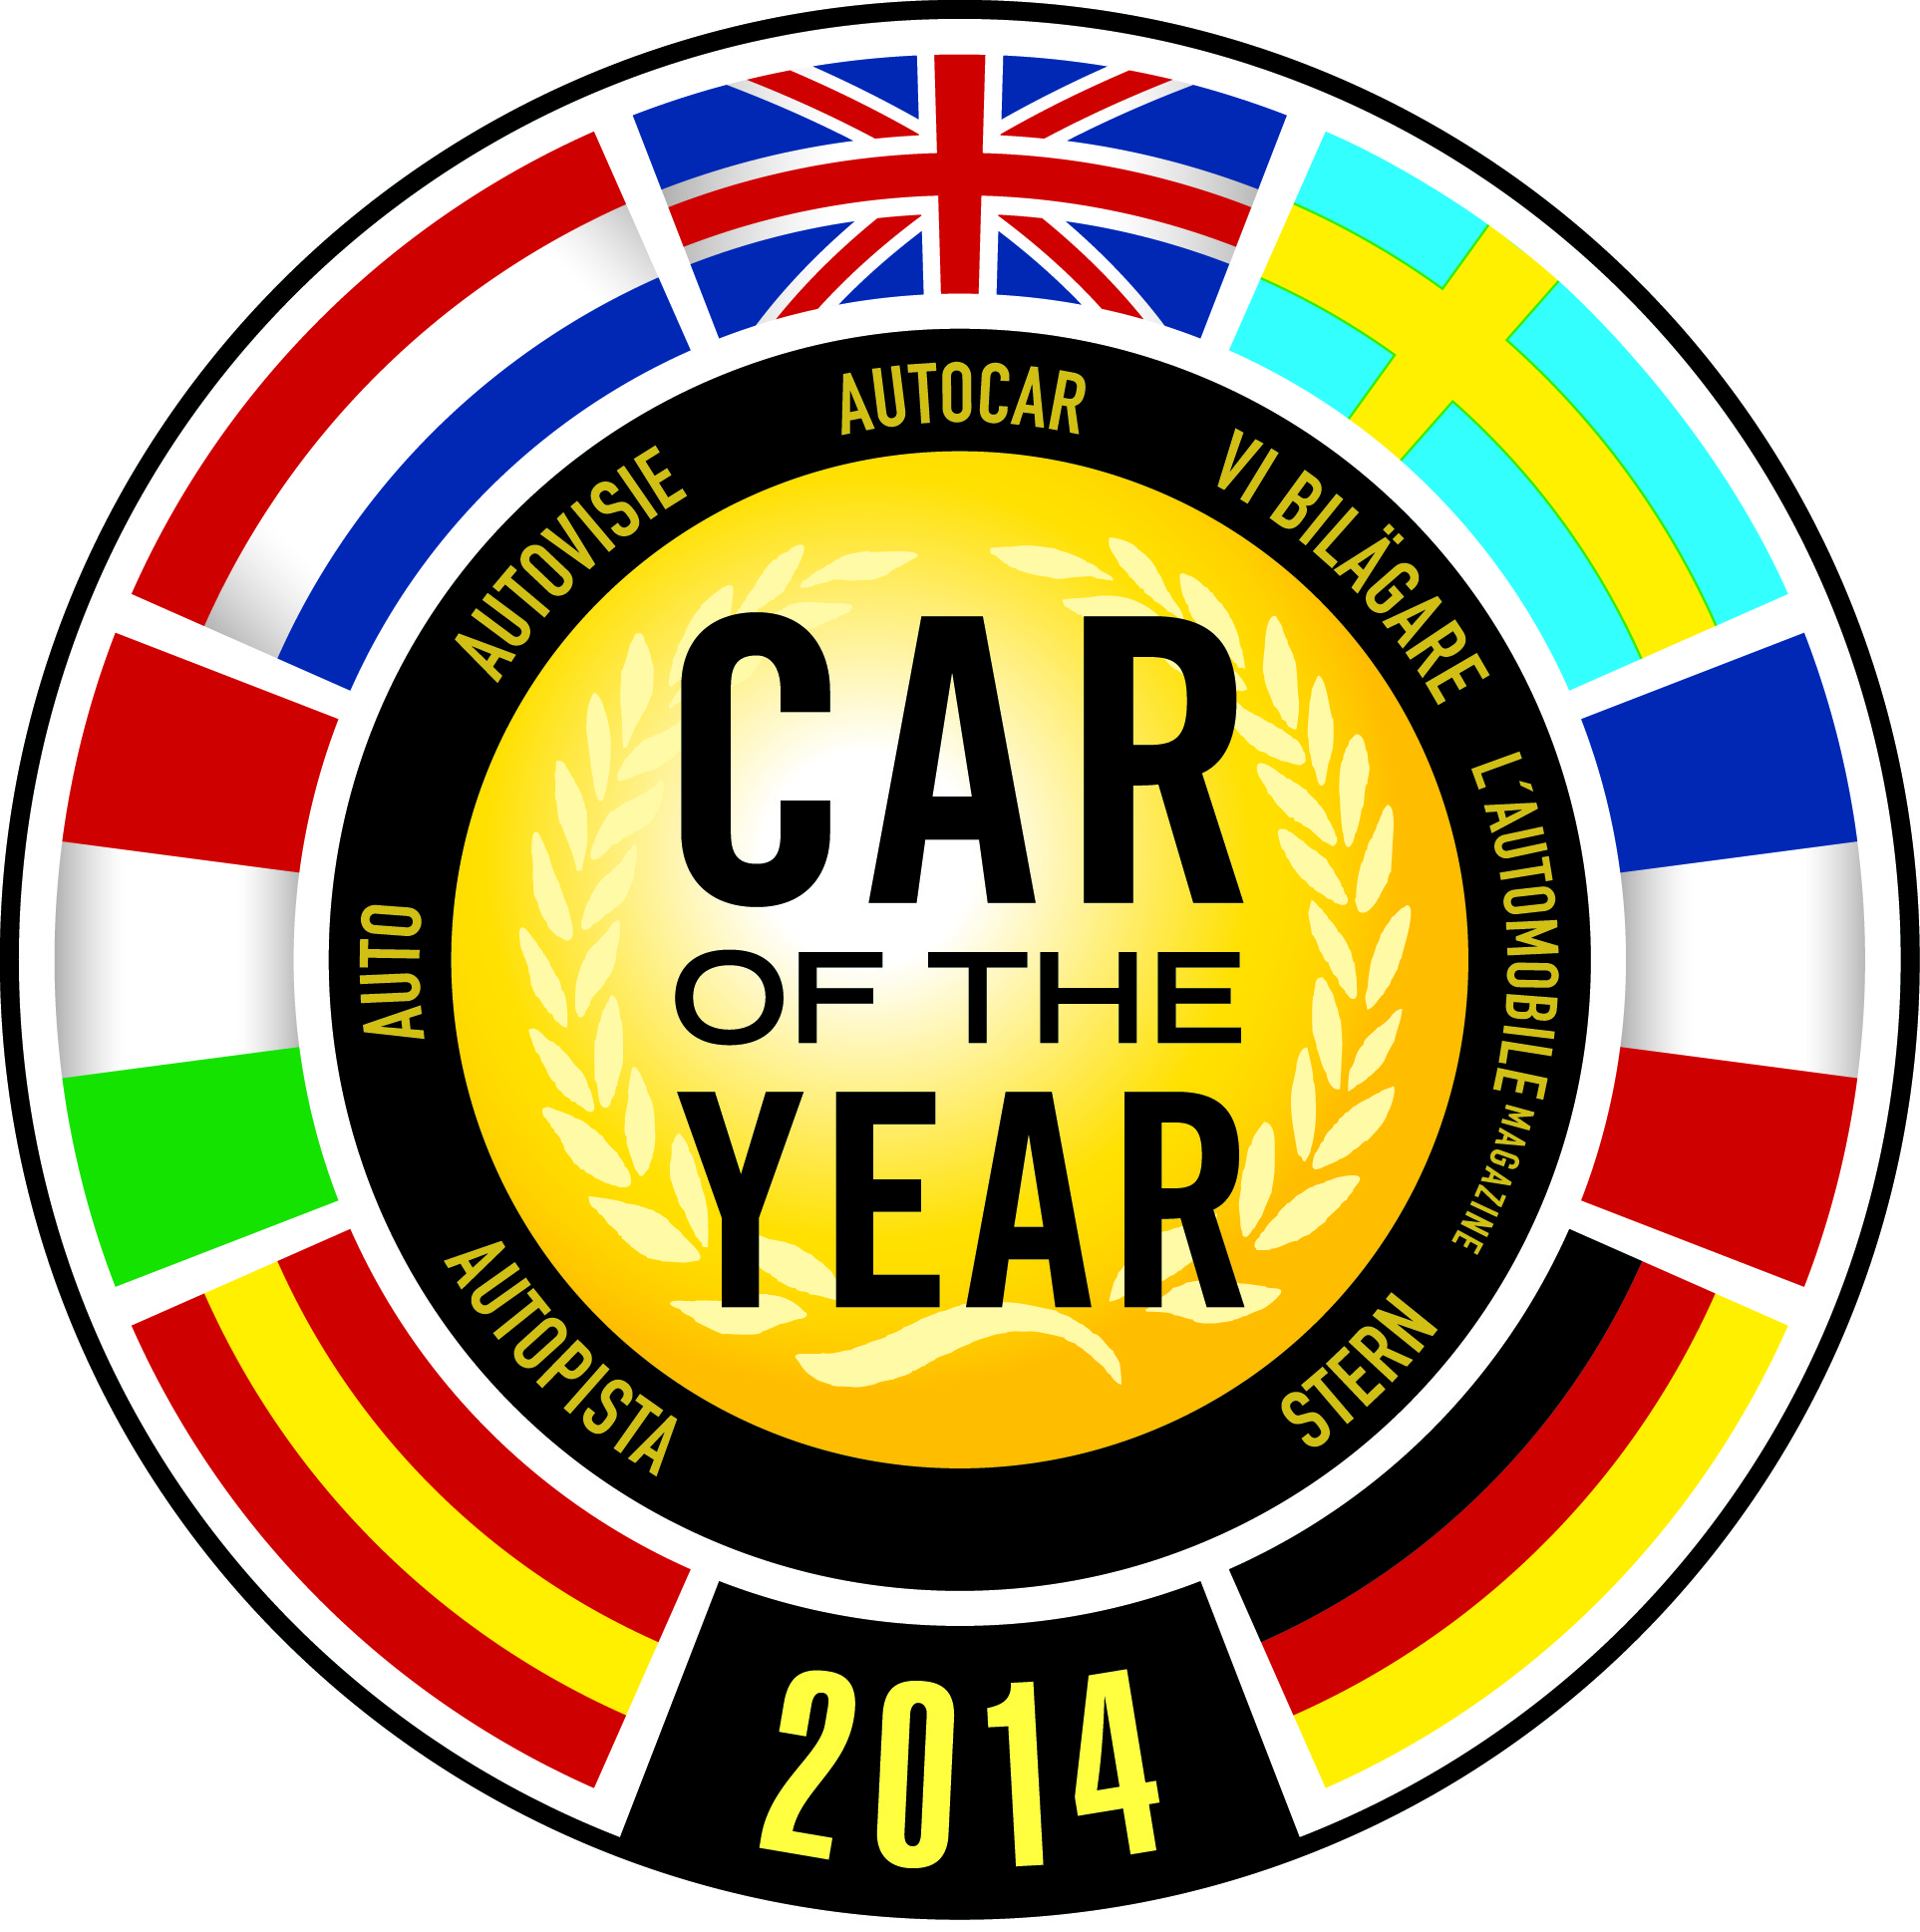 The Scott Jones Ace Parking Super Car of the Year – Koenigsegg